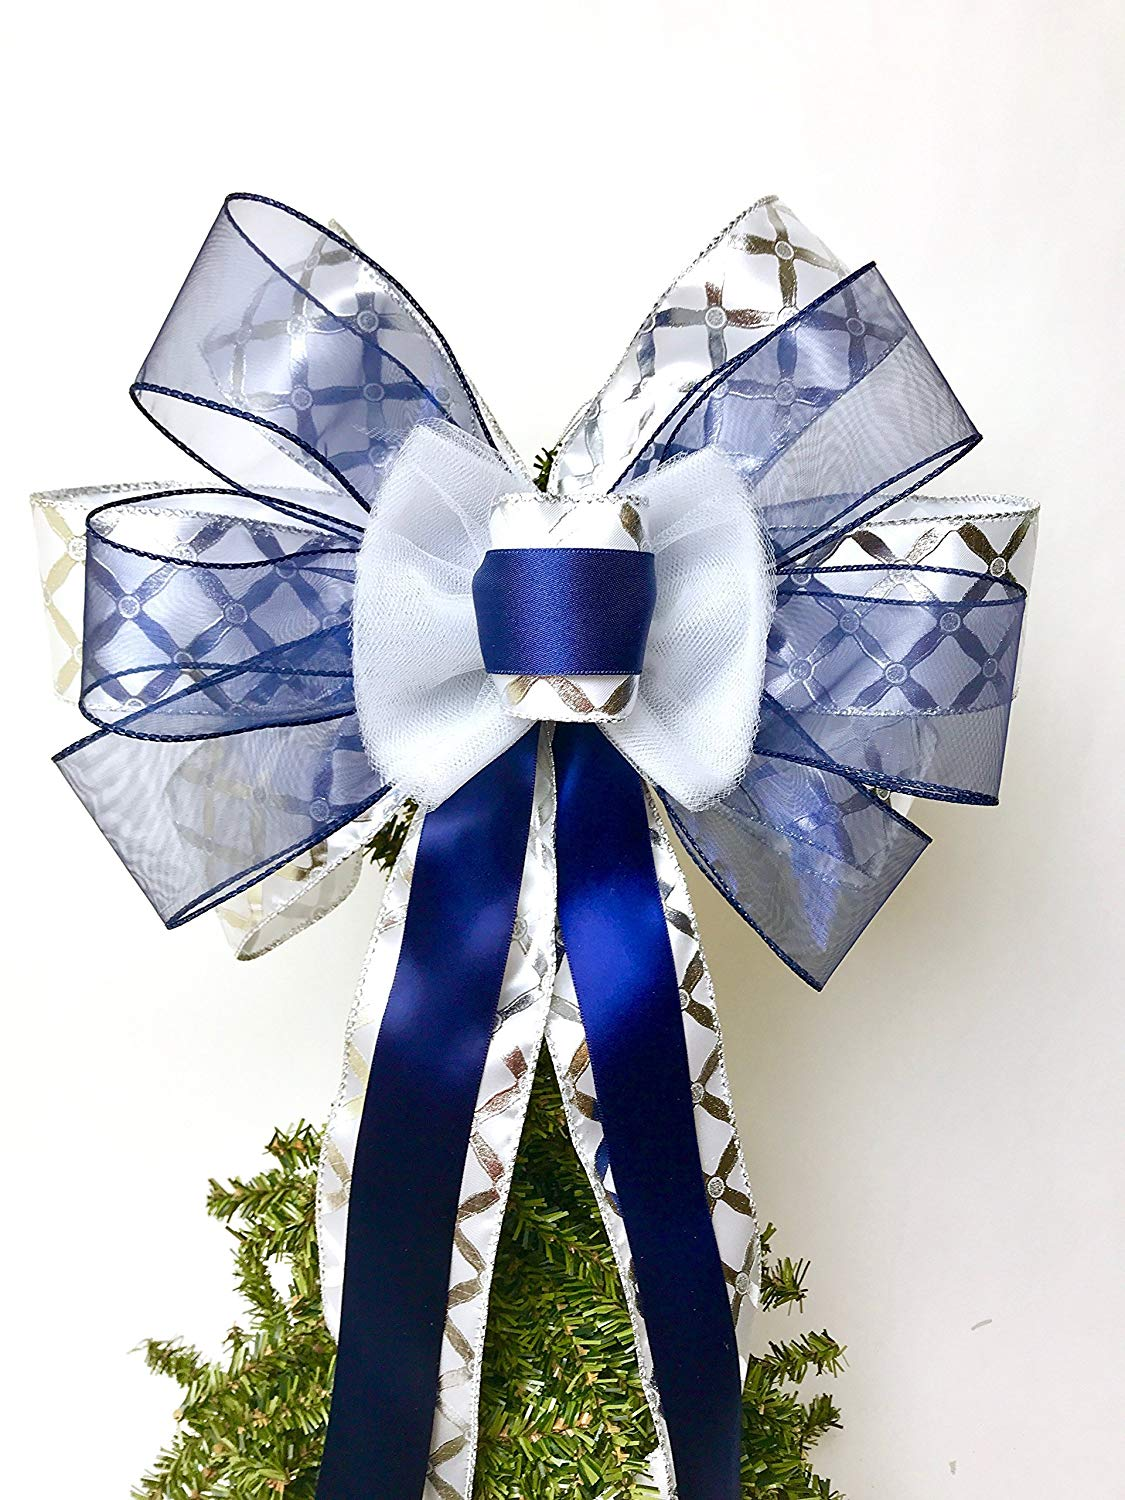 Gift Bow, Navy Blue and White Handmade Large Gift Bow, Office Decorating, Wreath Bows, Holiday Bow, Home Decor, Swag Bow, Door Decor - Handmade Bow